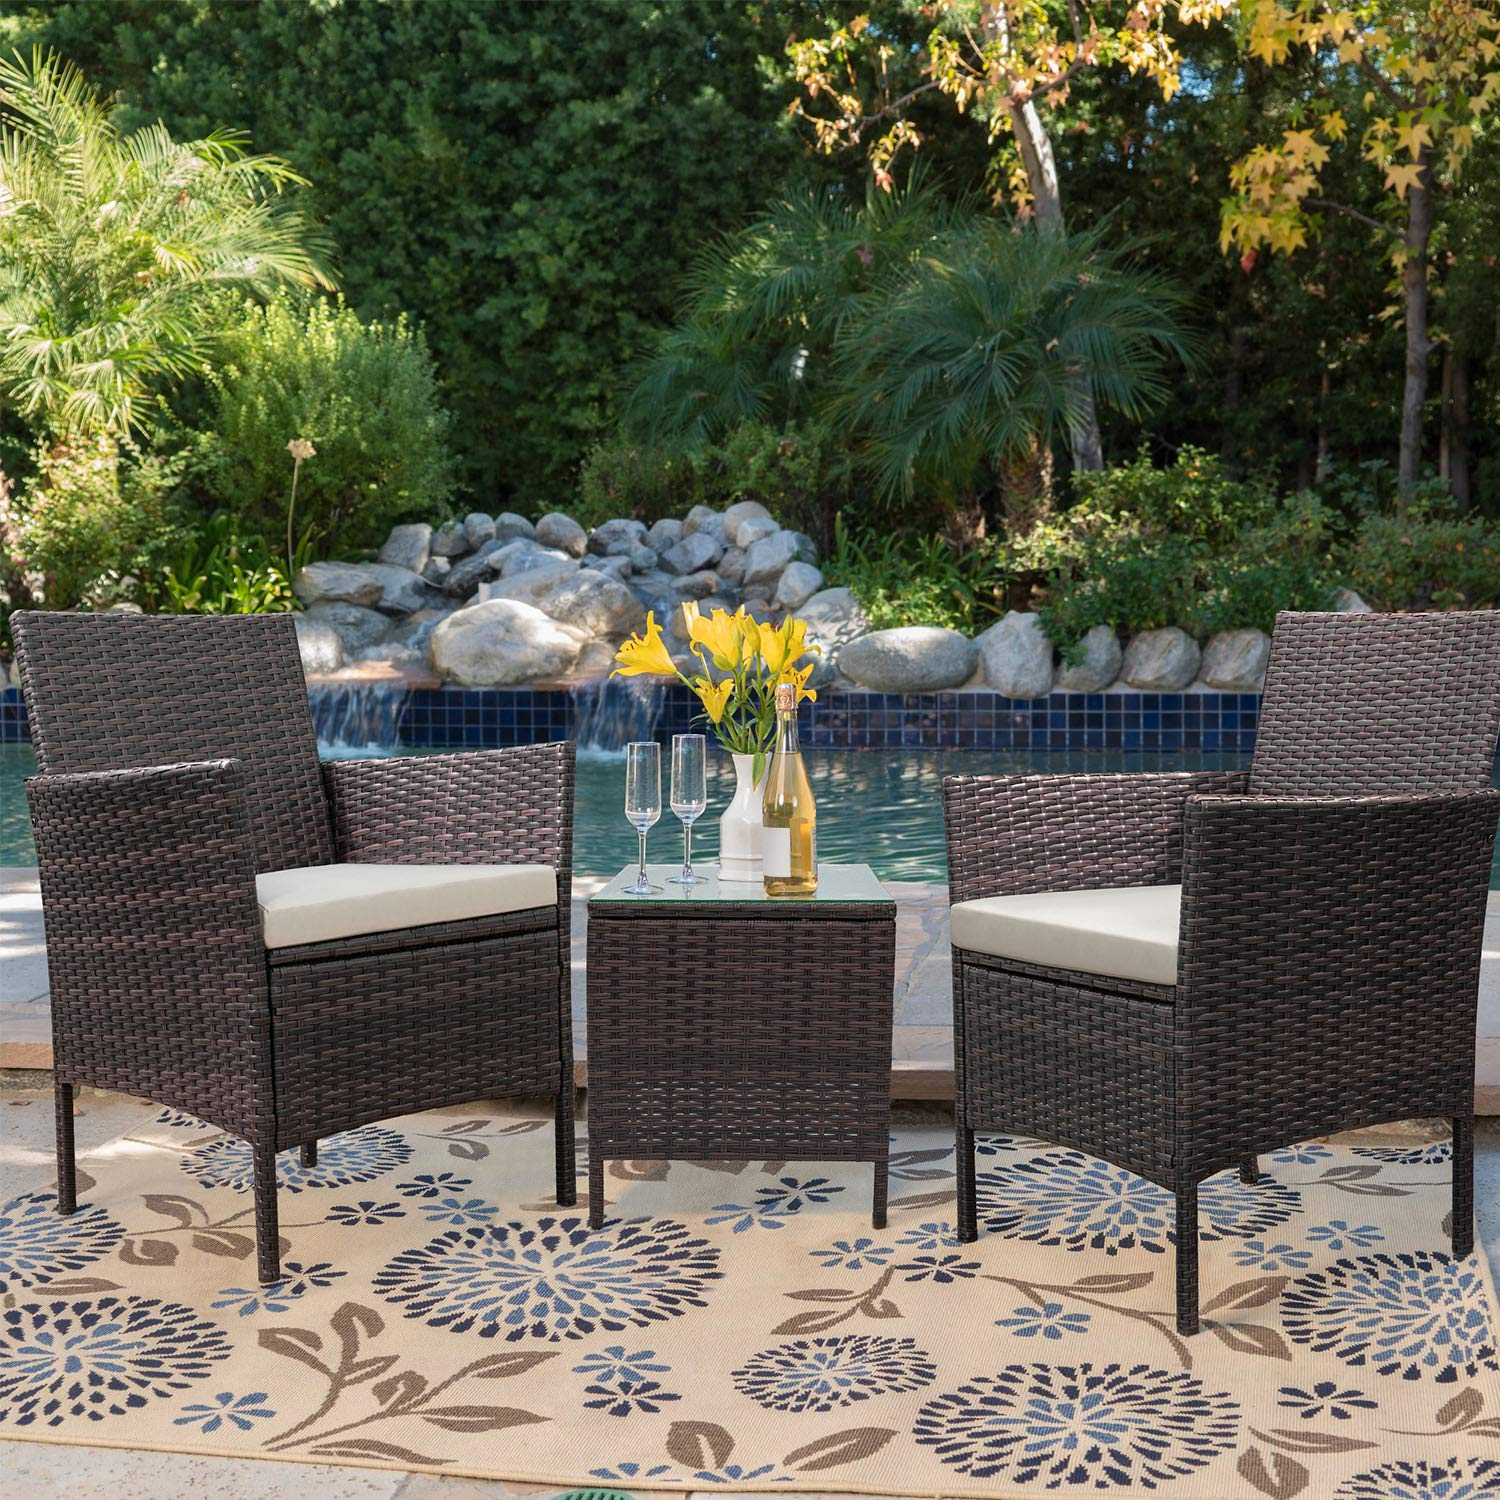 walnew 3 pcs outdoor patio furniture pe rattan wicker table and chairs set bar set with cushioned tempered glass brown beige